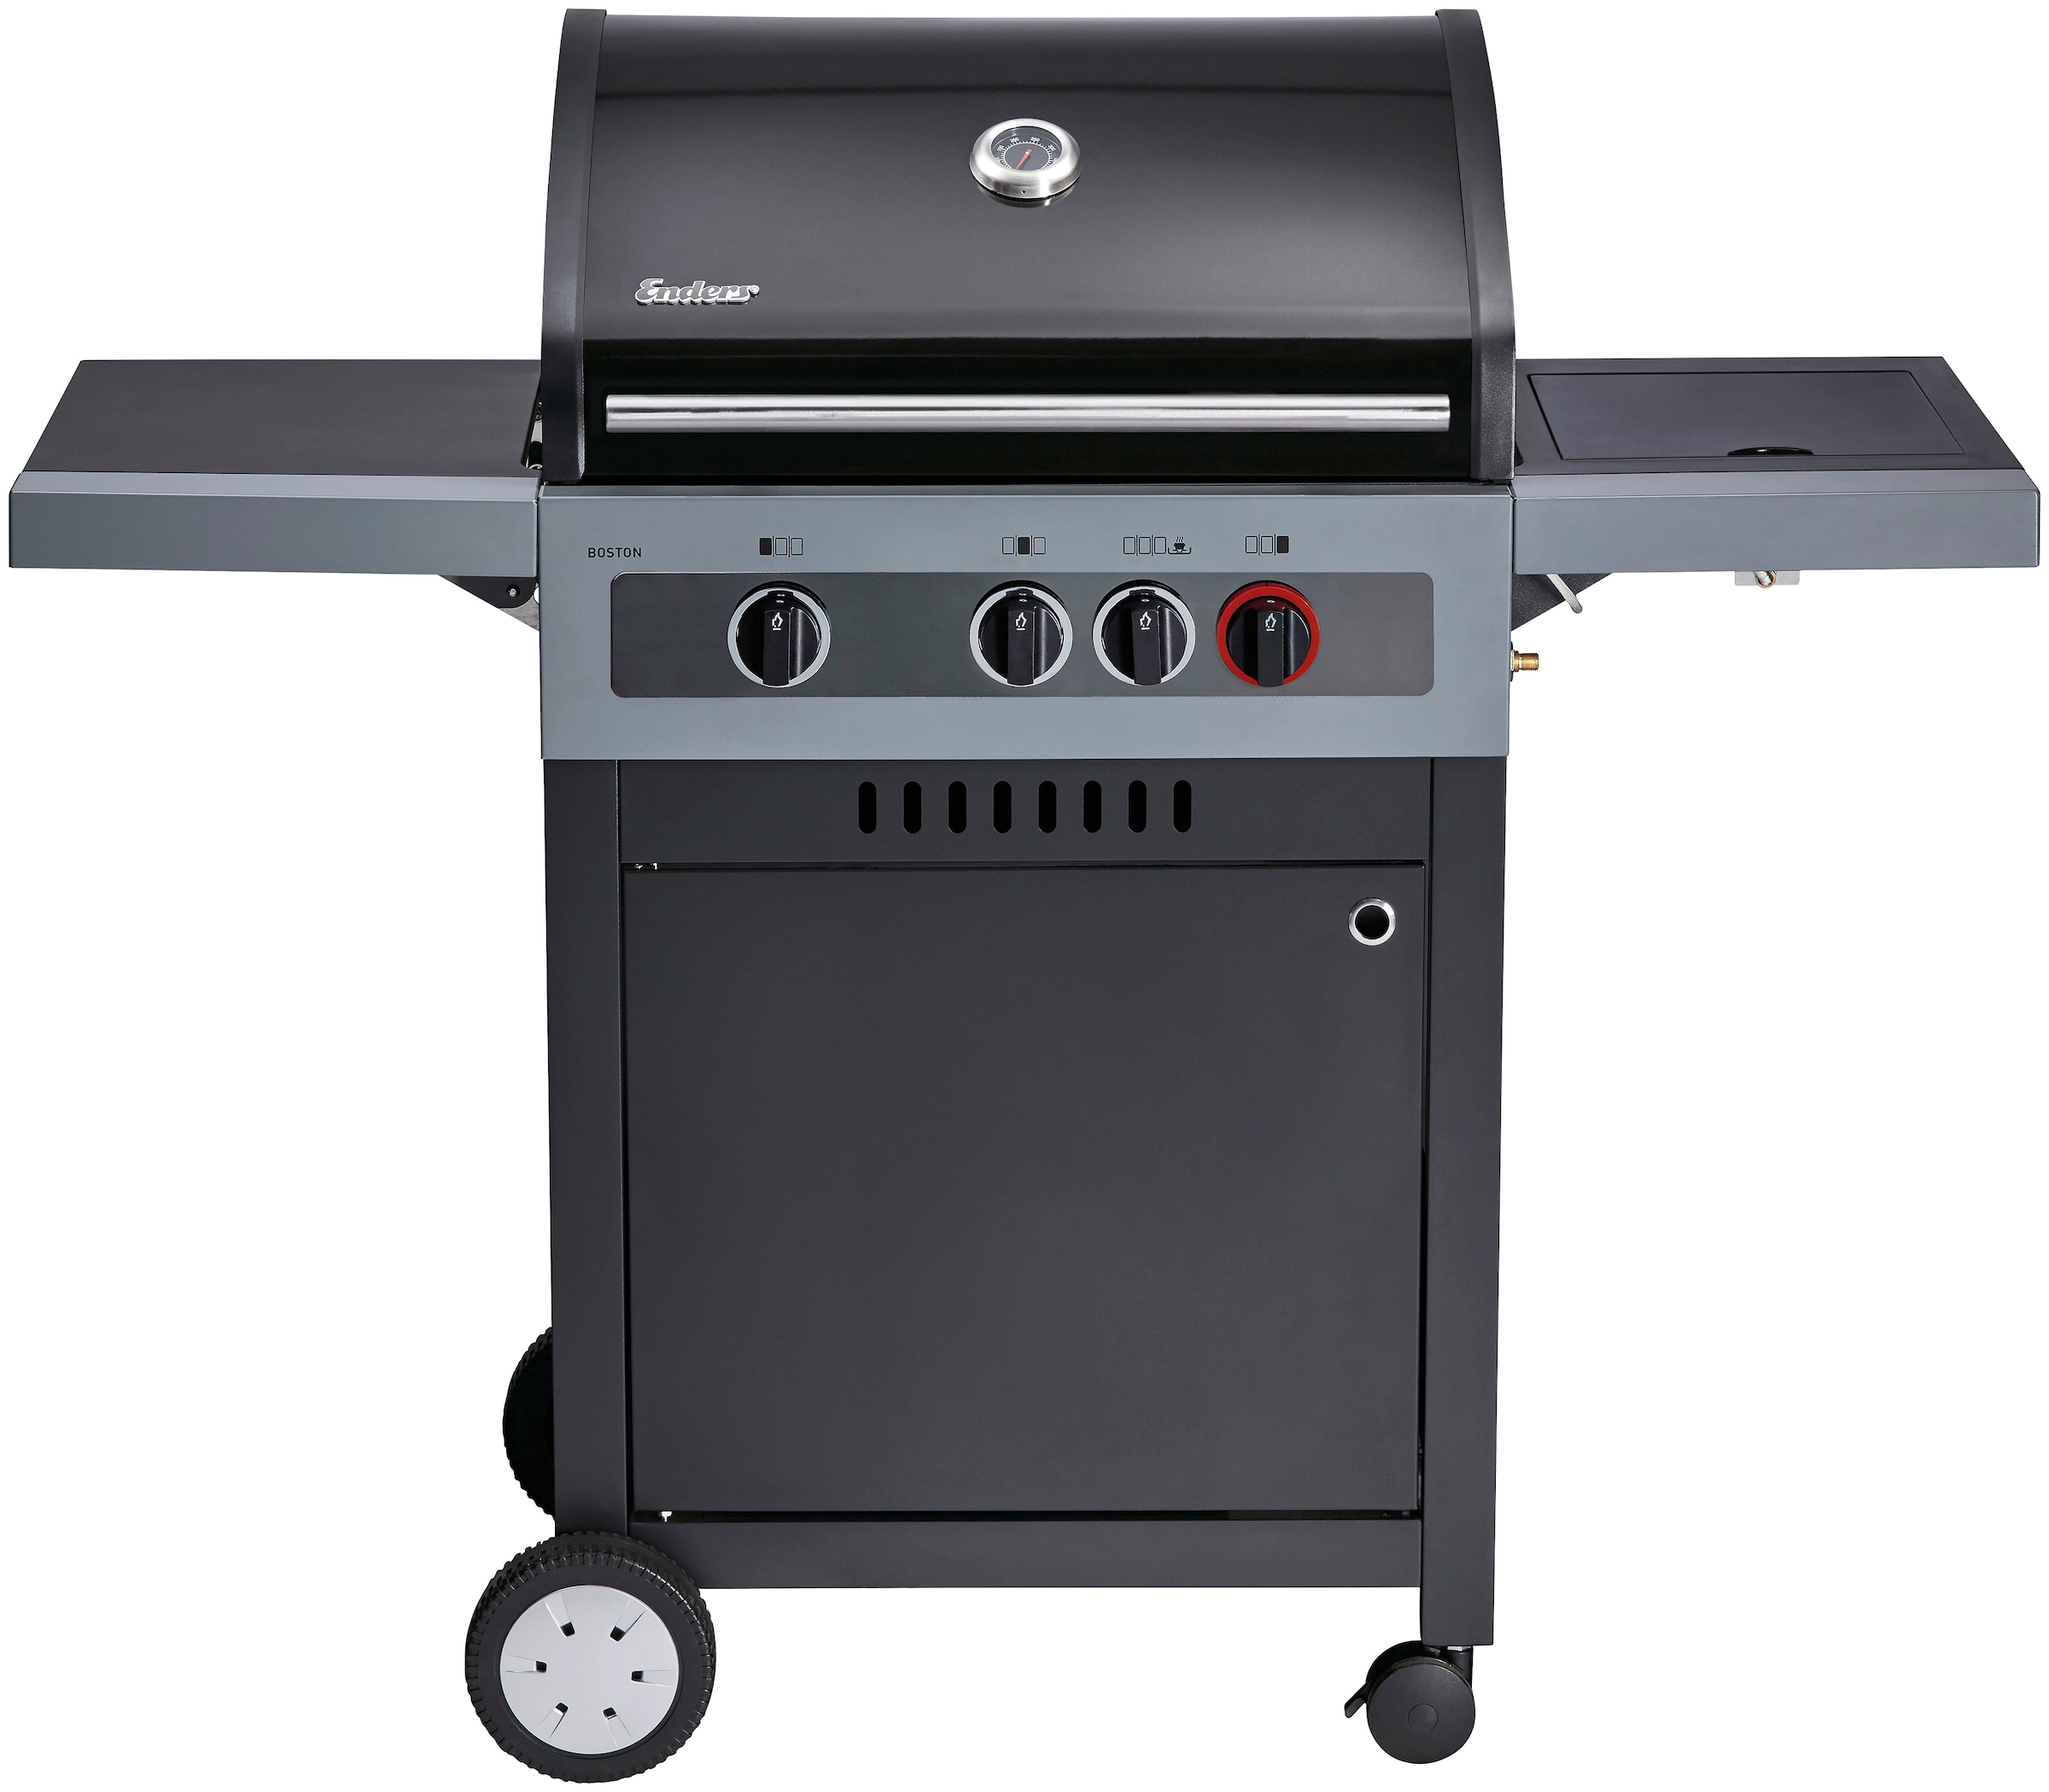 Enders Gasgrill Grillrost : Enders gasgrill chicago grillwagen campinggrill